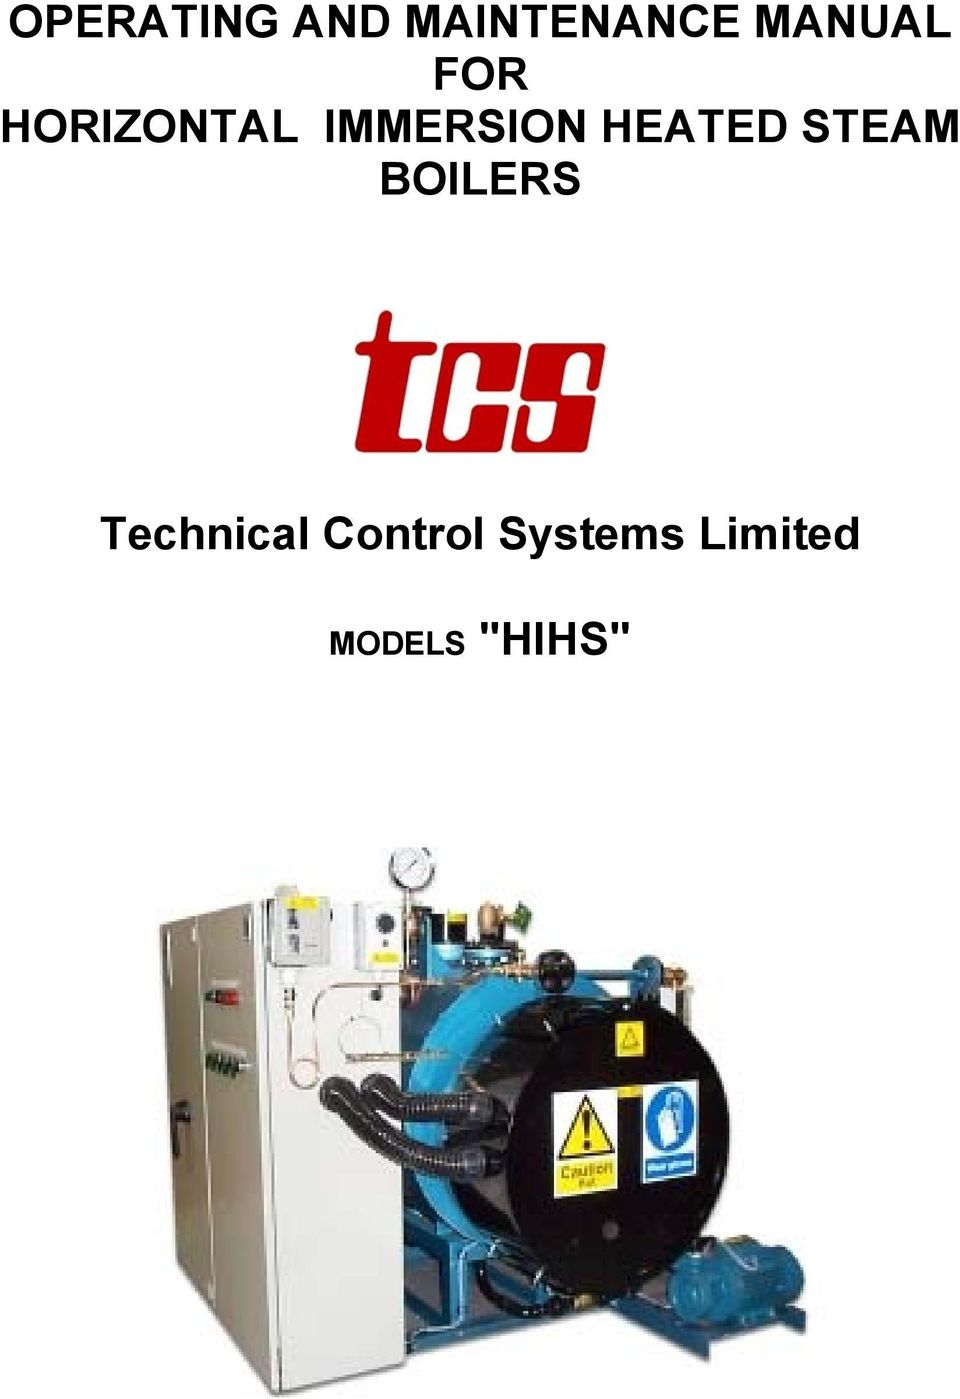 HEATED STEAM BOILERS Technical